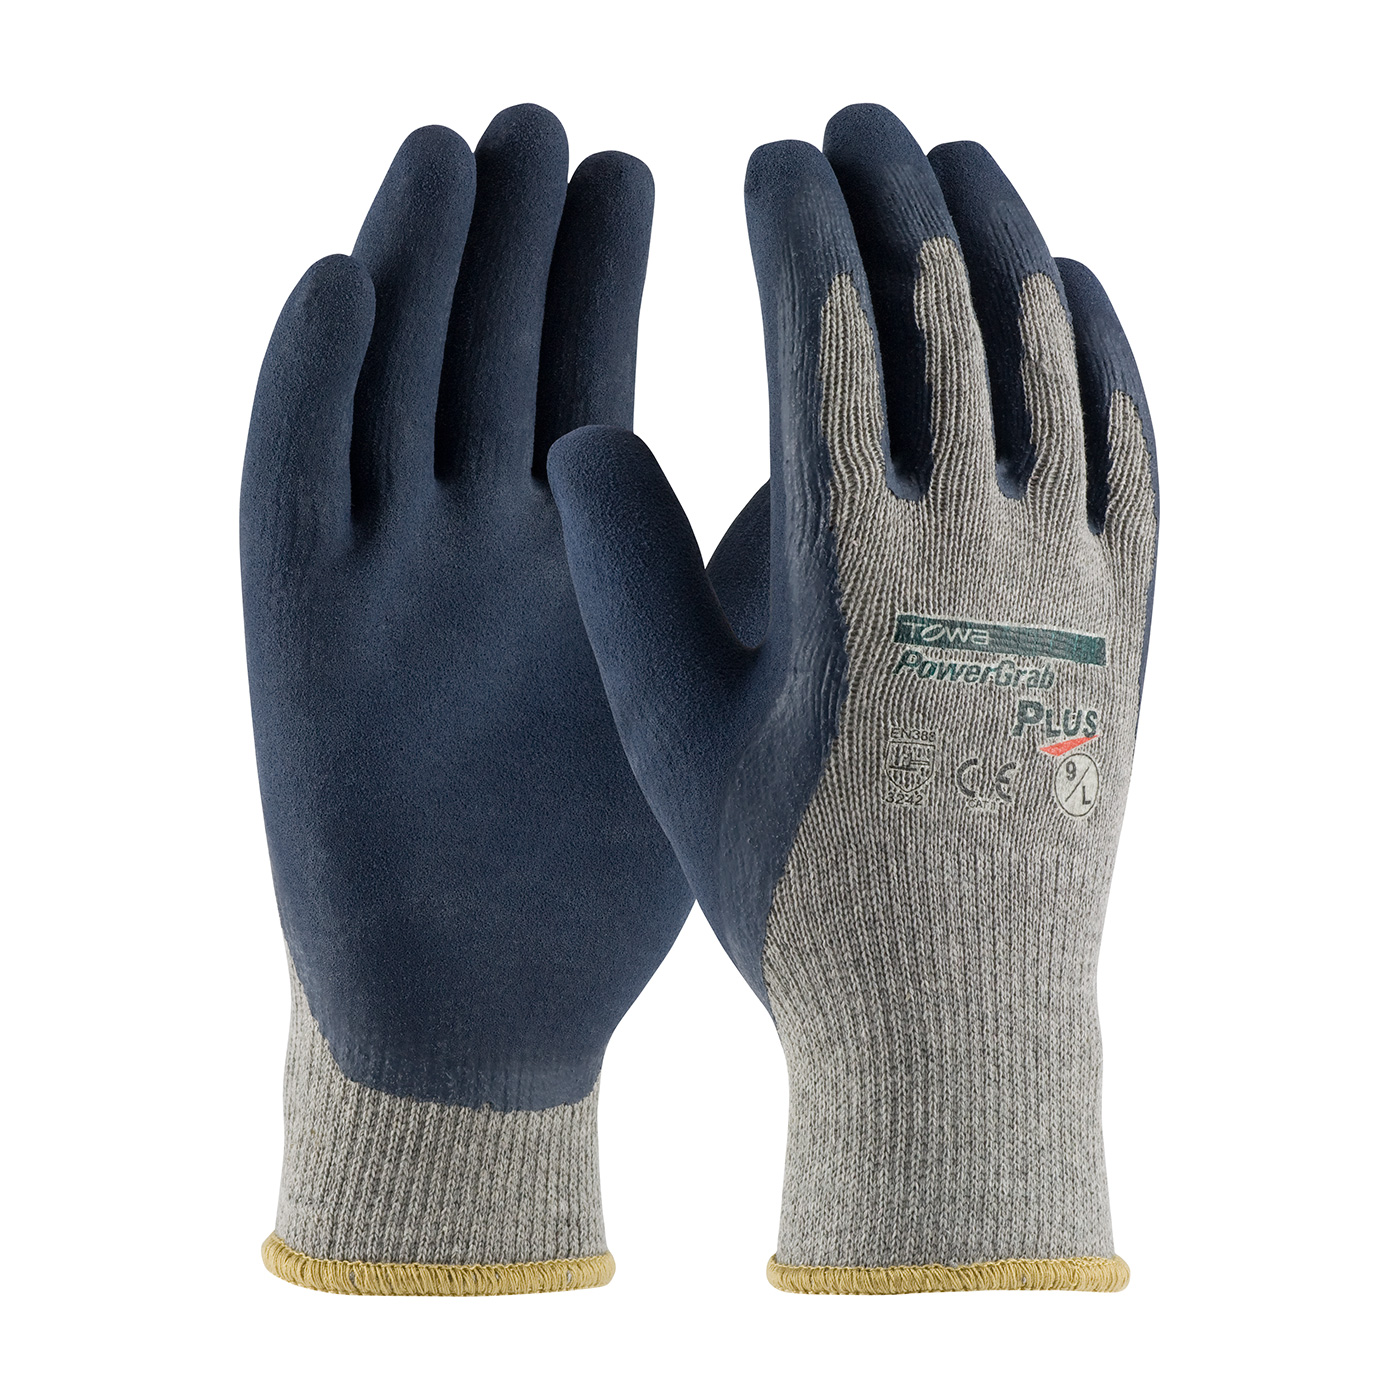 PIP® PowerGrab™ Plus Seamless Knit Cotton / Polyester Glove with Latex Coated MicroFinish Grip on Palm & Fingers #39-C1600